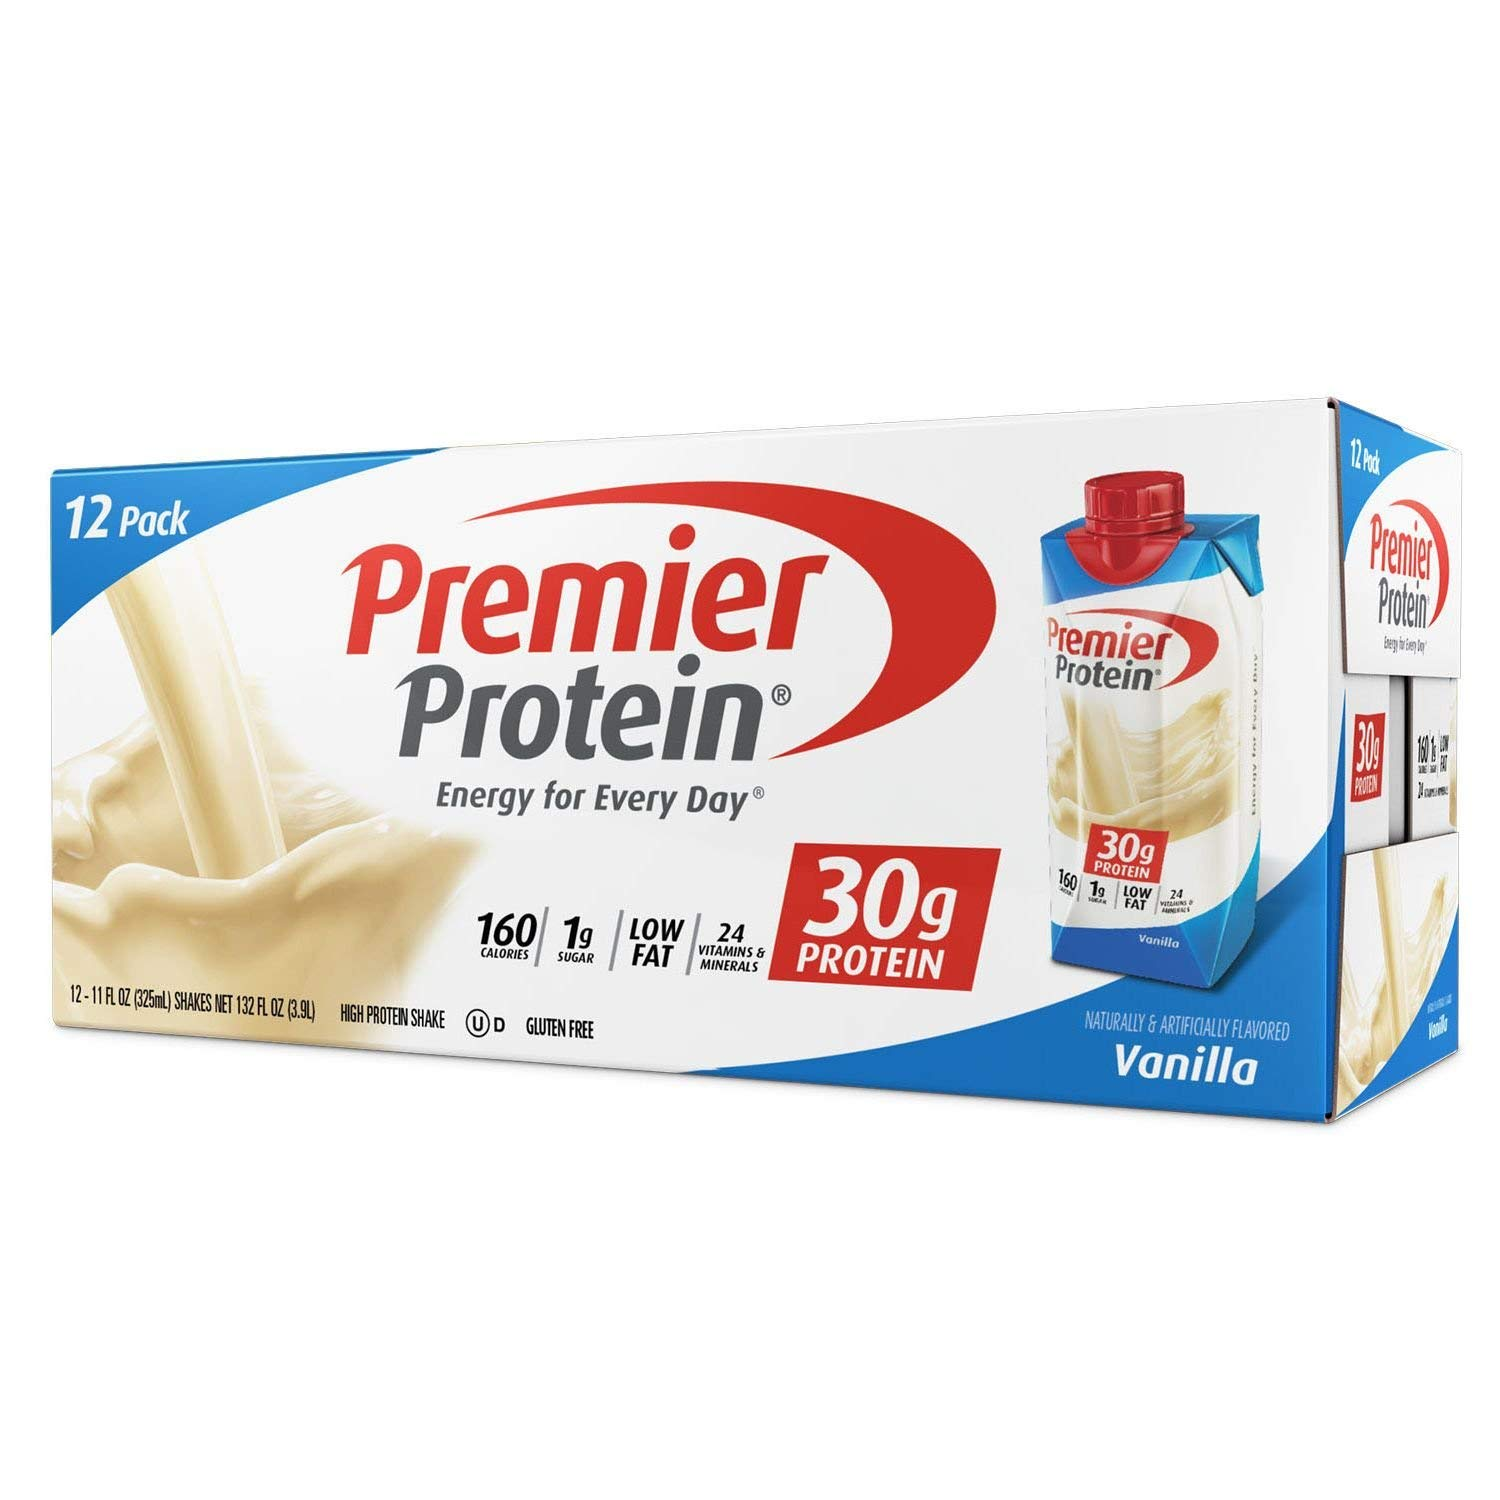 Premier Nutrition High Protein Shake, Vanilla, 11 oz. (Pack of 36) by Premier Protein (Image #1)